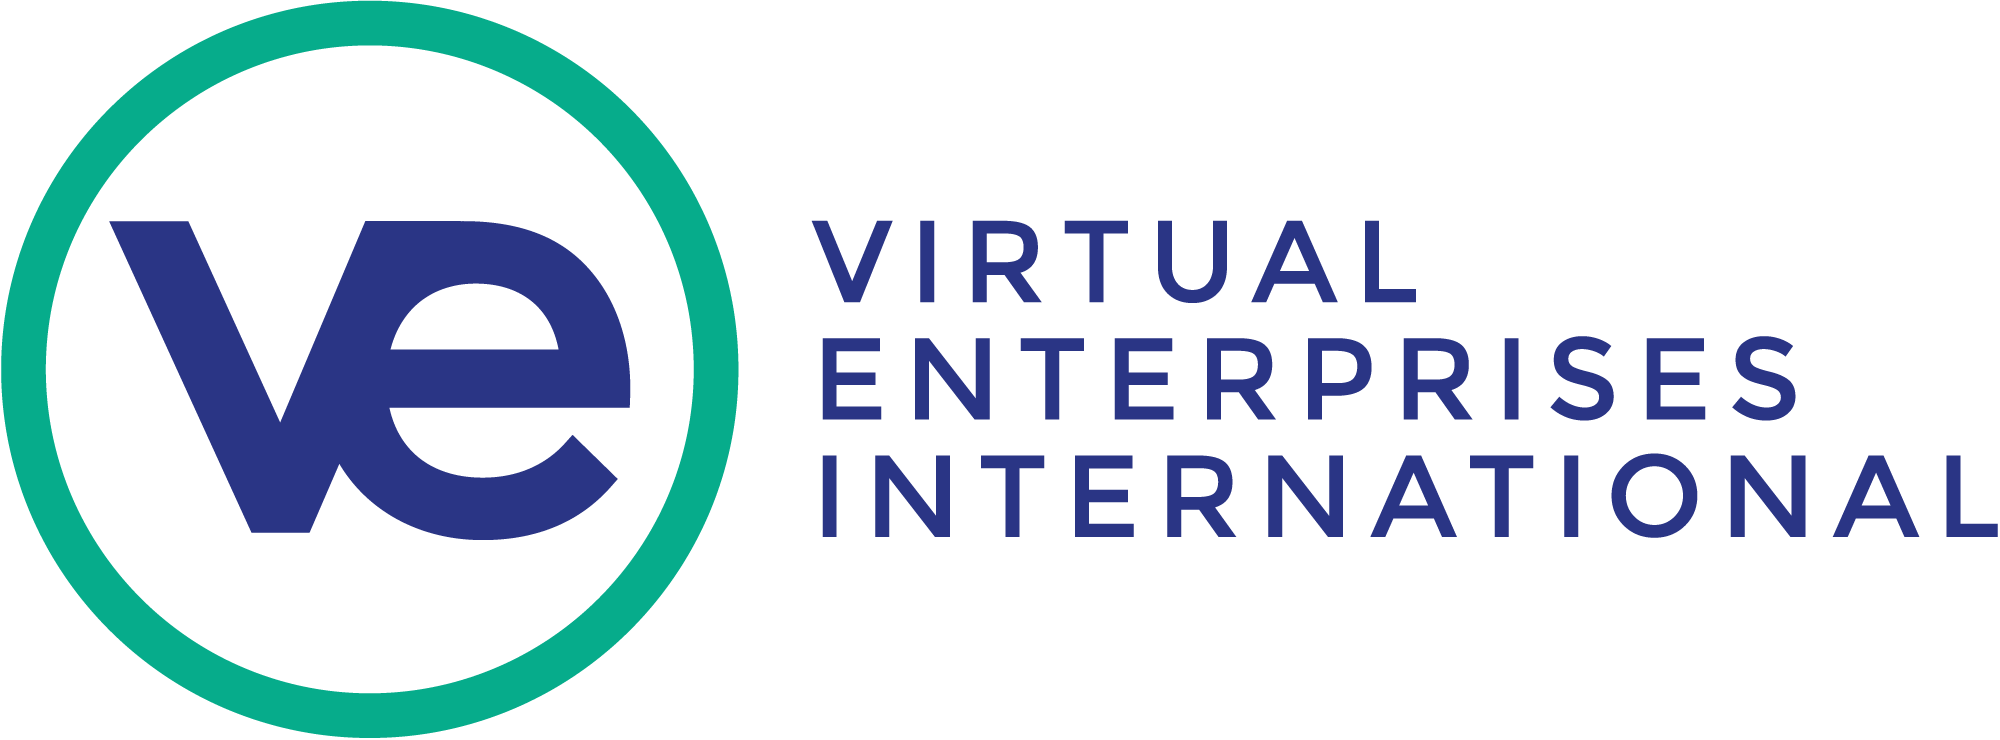 Virtual Enterprise Job Openings